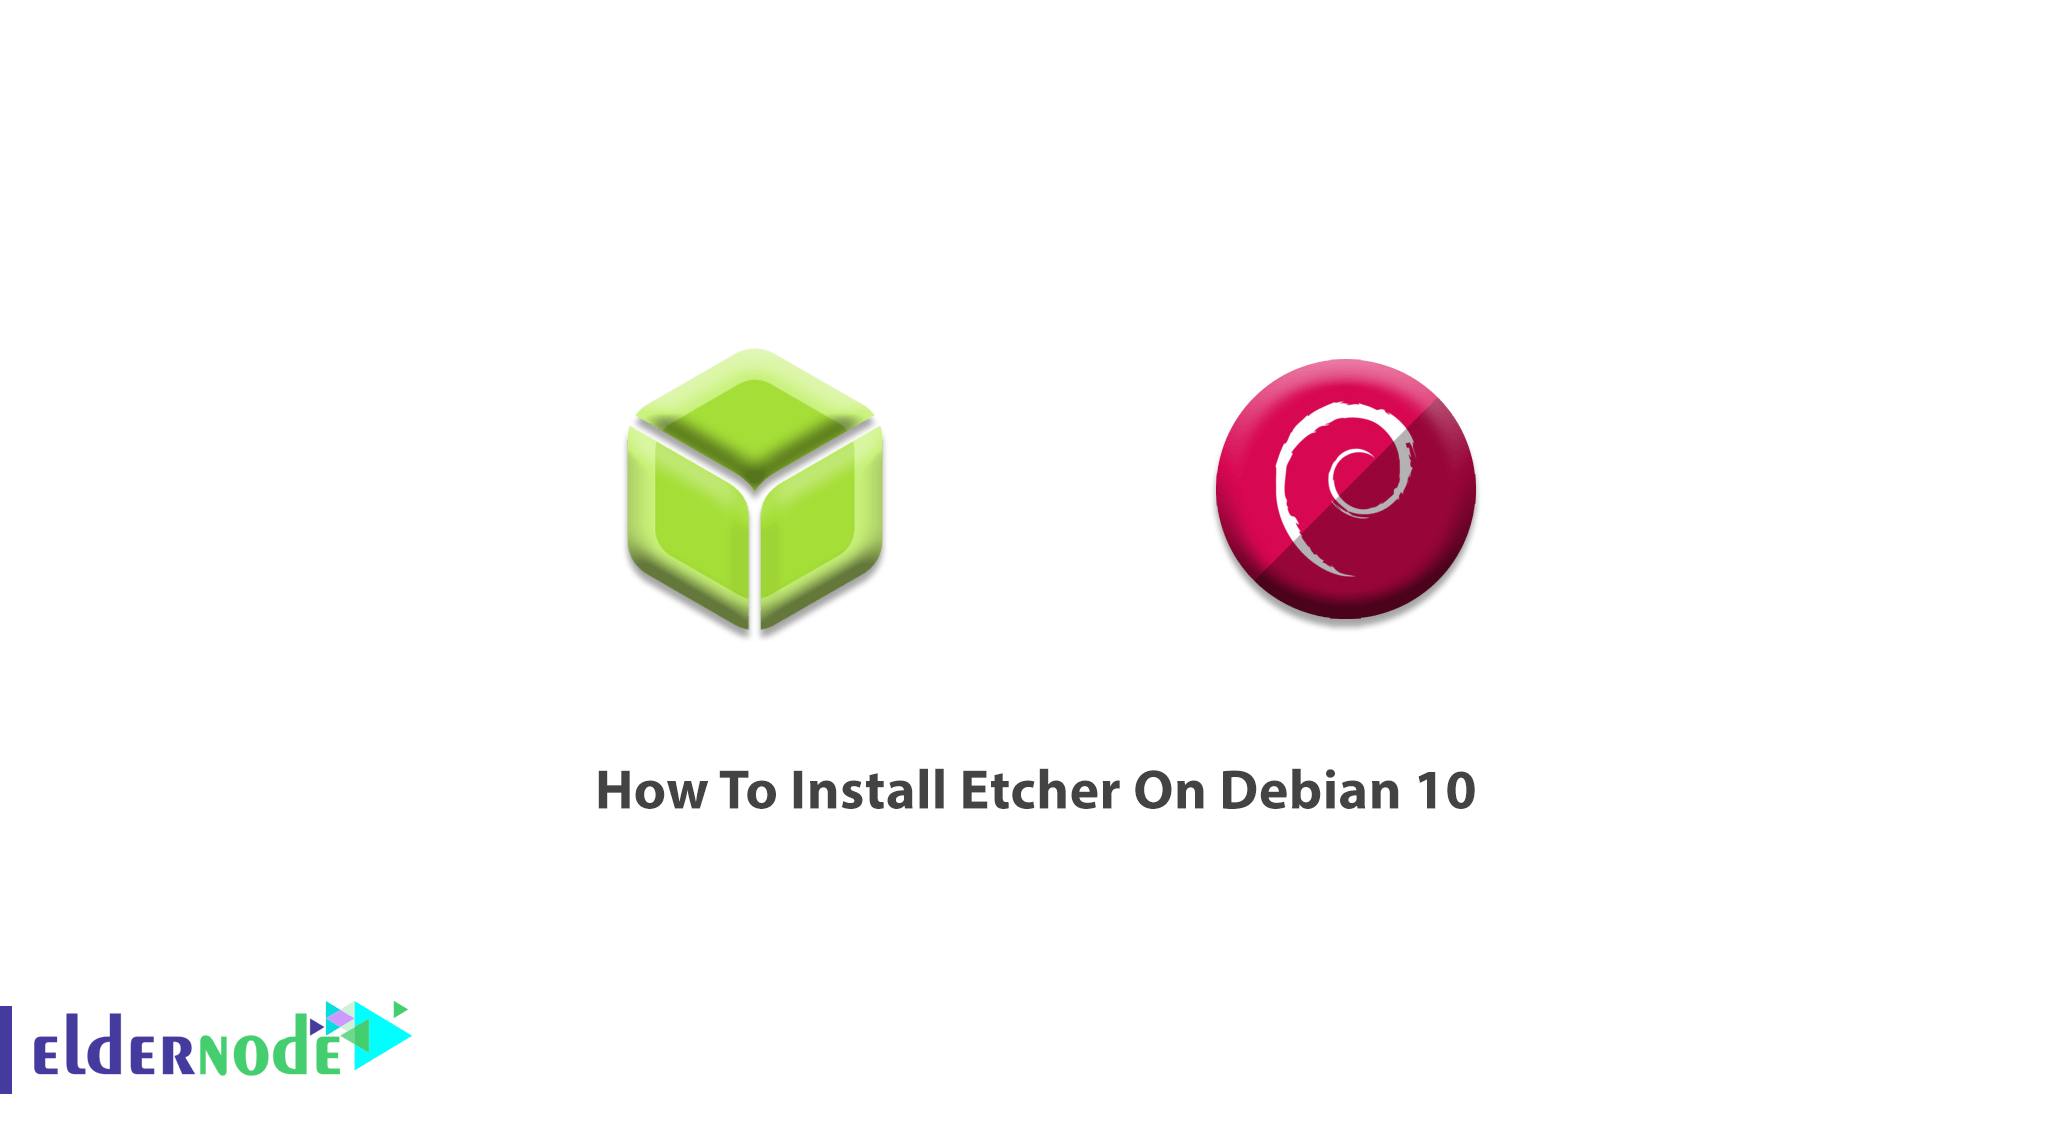 How To Install Etcher On Debian 10